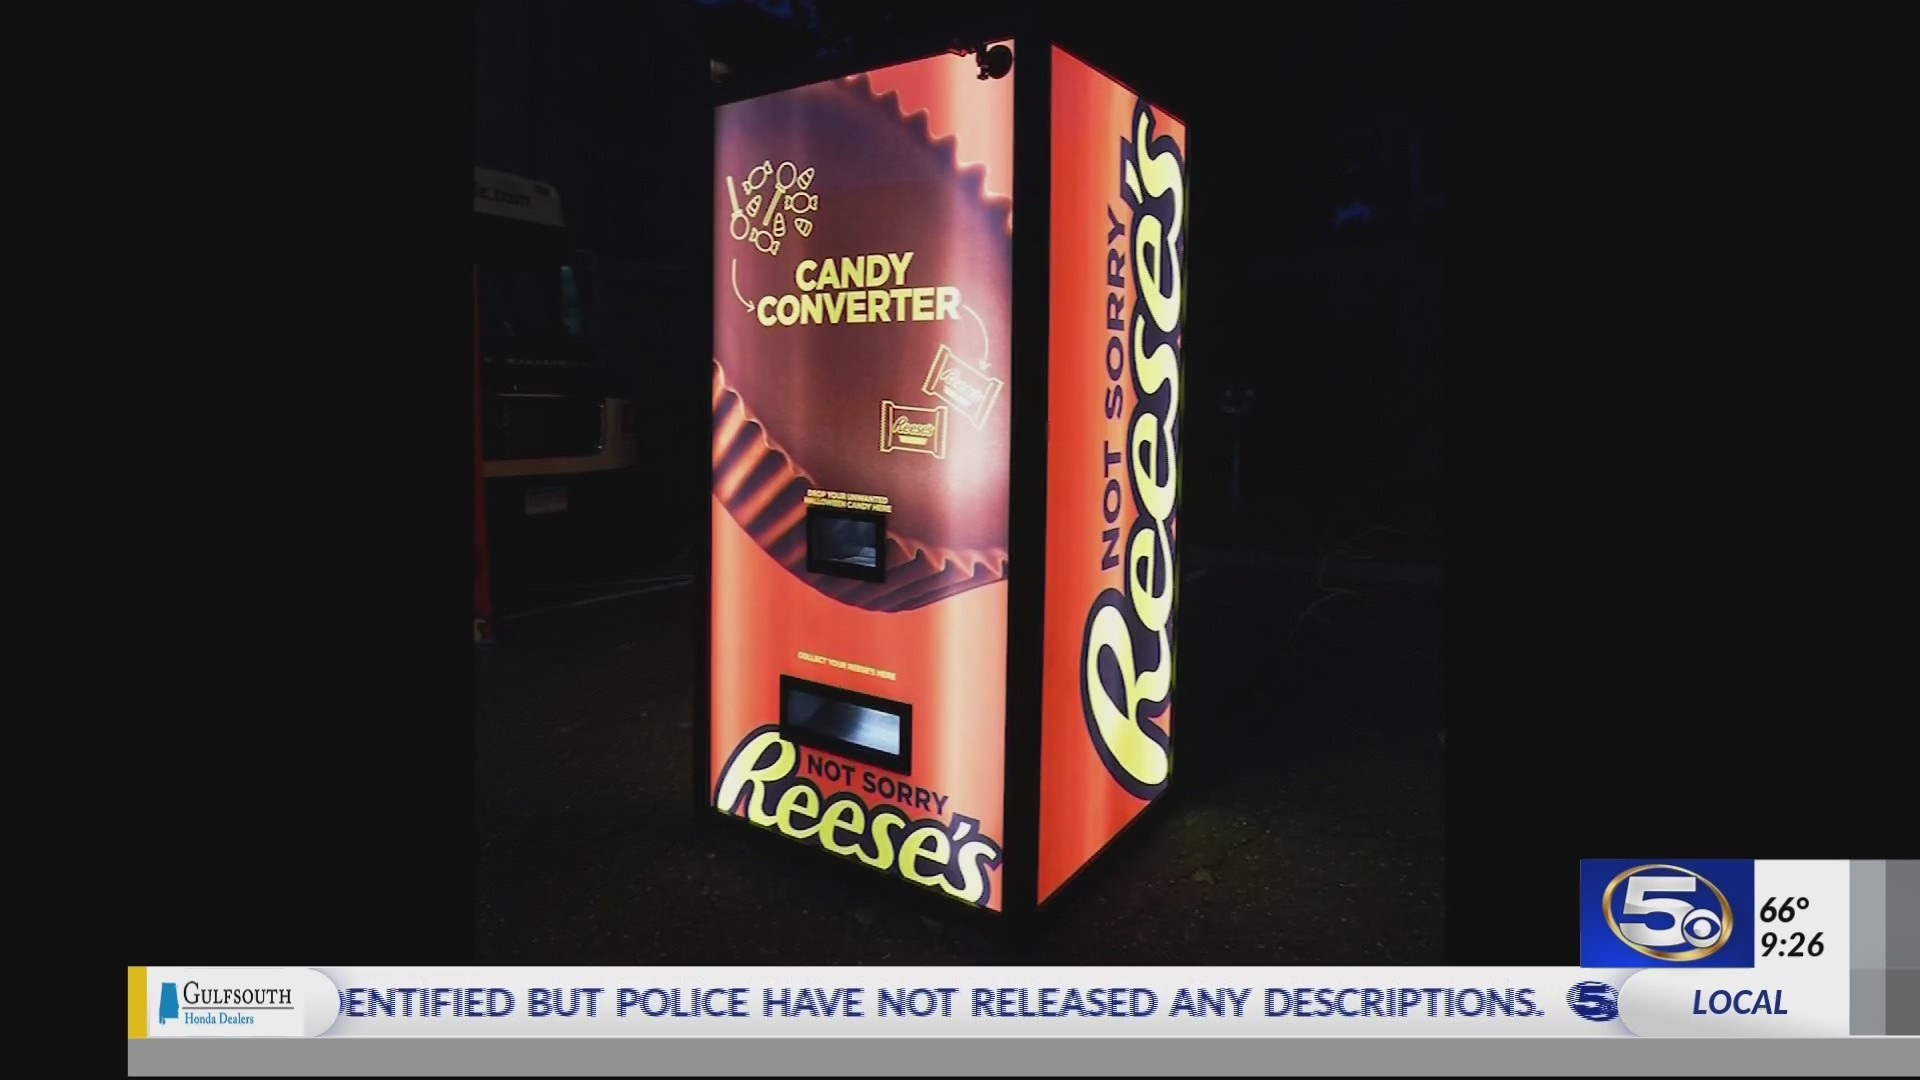 Reese's is letting people trade in unwanted candy for peanut butter cups